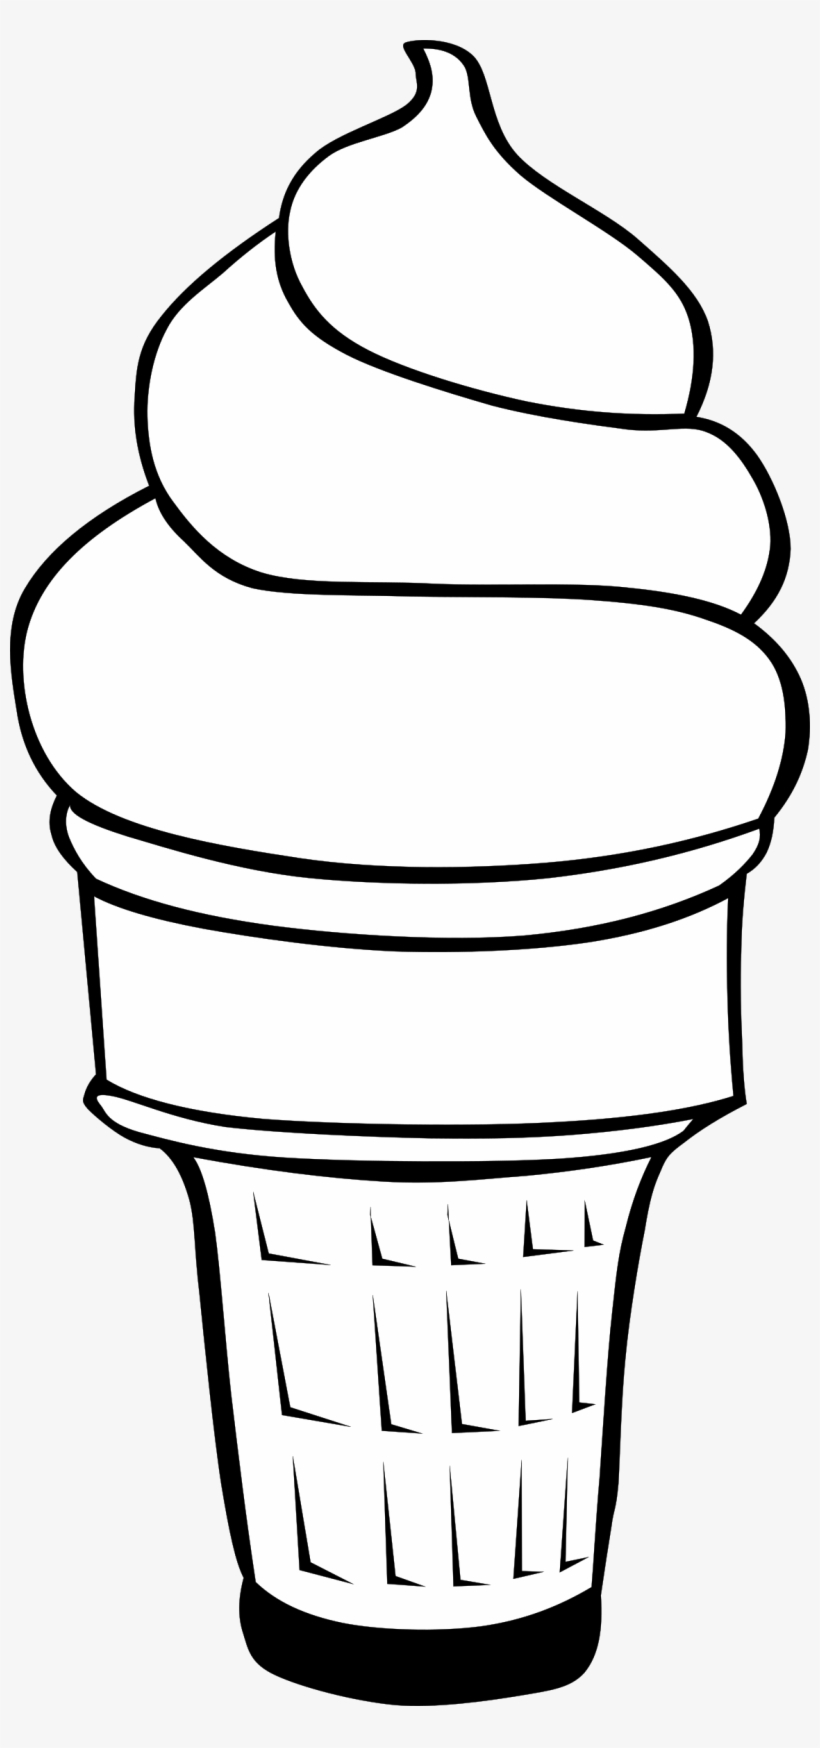 Ice cream clipart png black and white image free stock Ice Clipart Line - Cute Black And White Ice Cream Cones Clipart ... image free stock